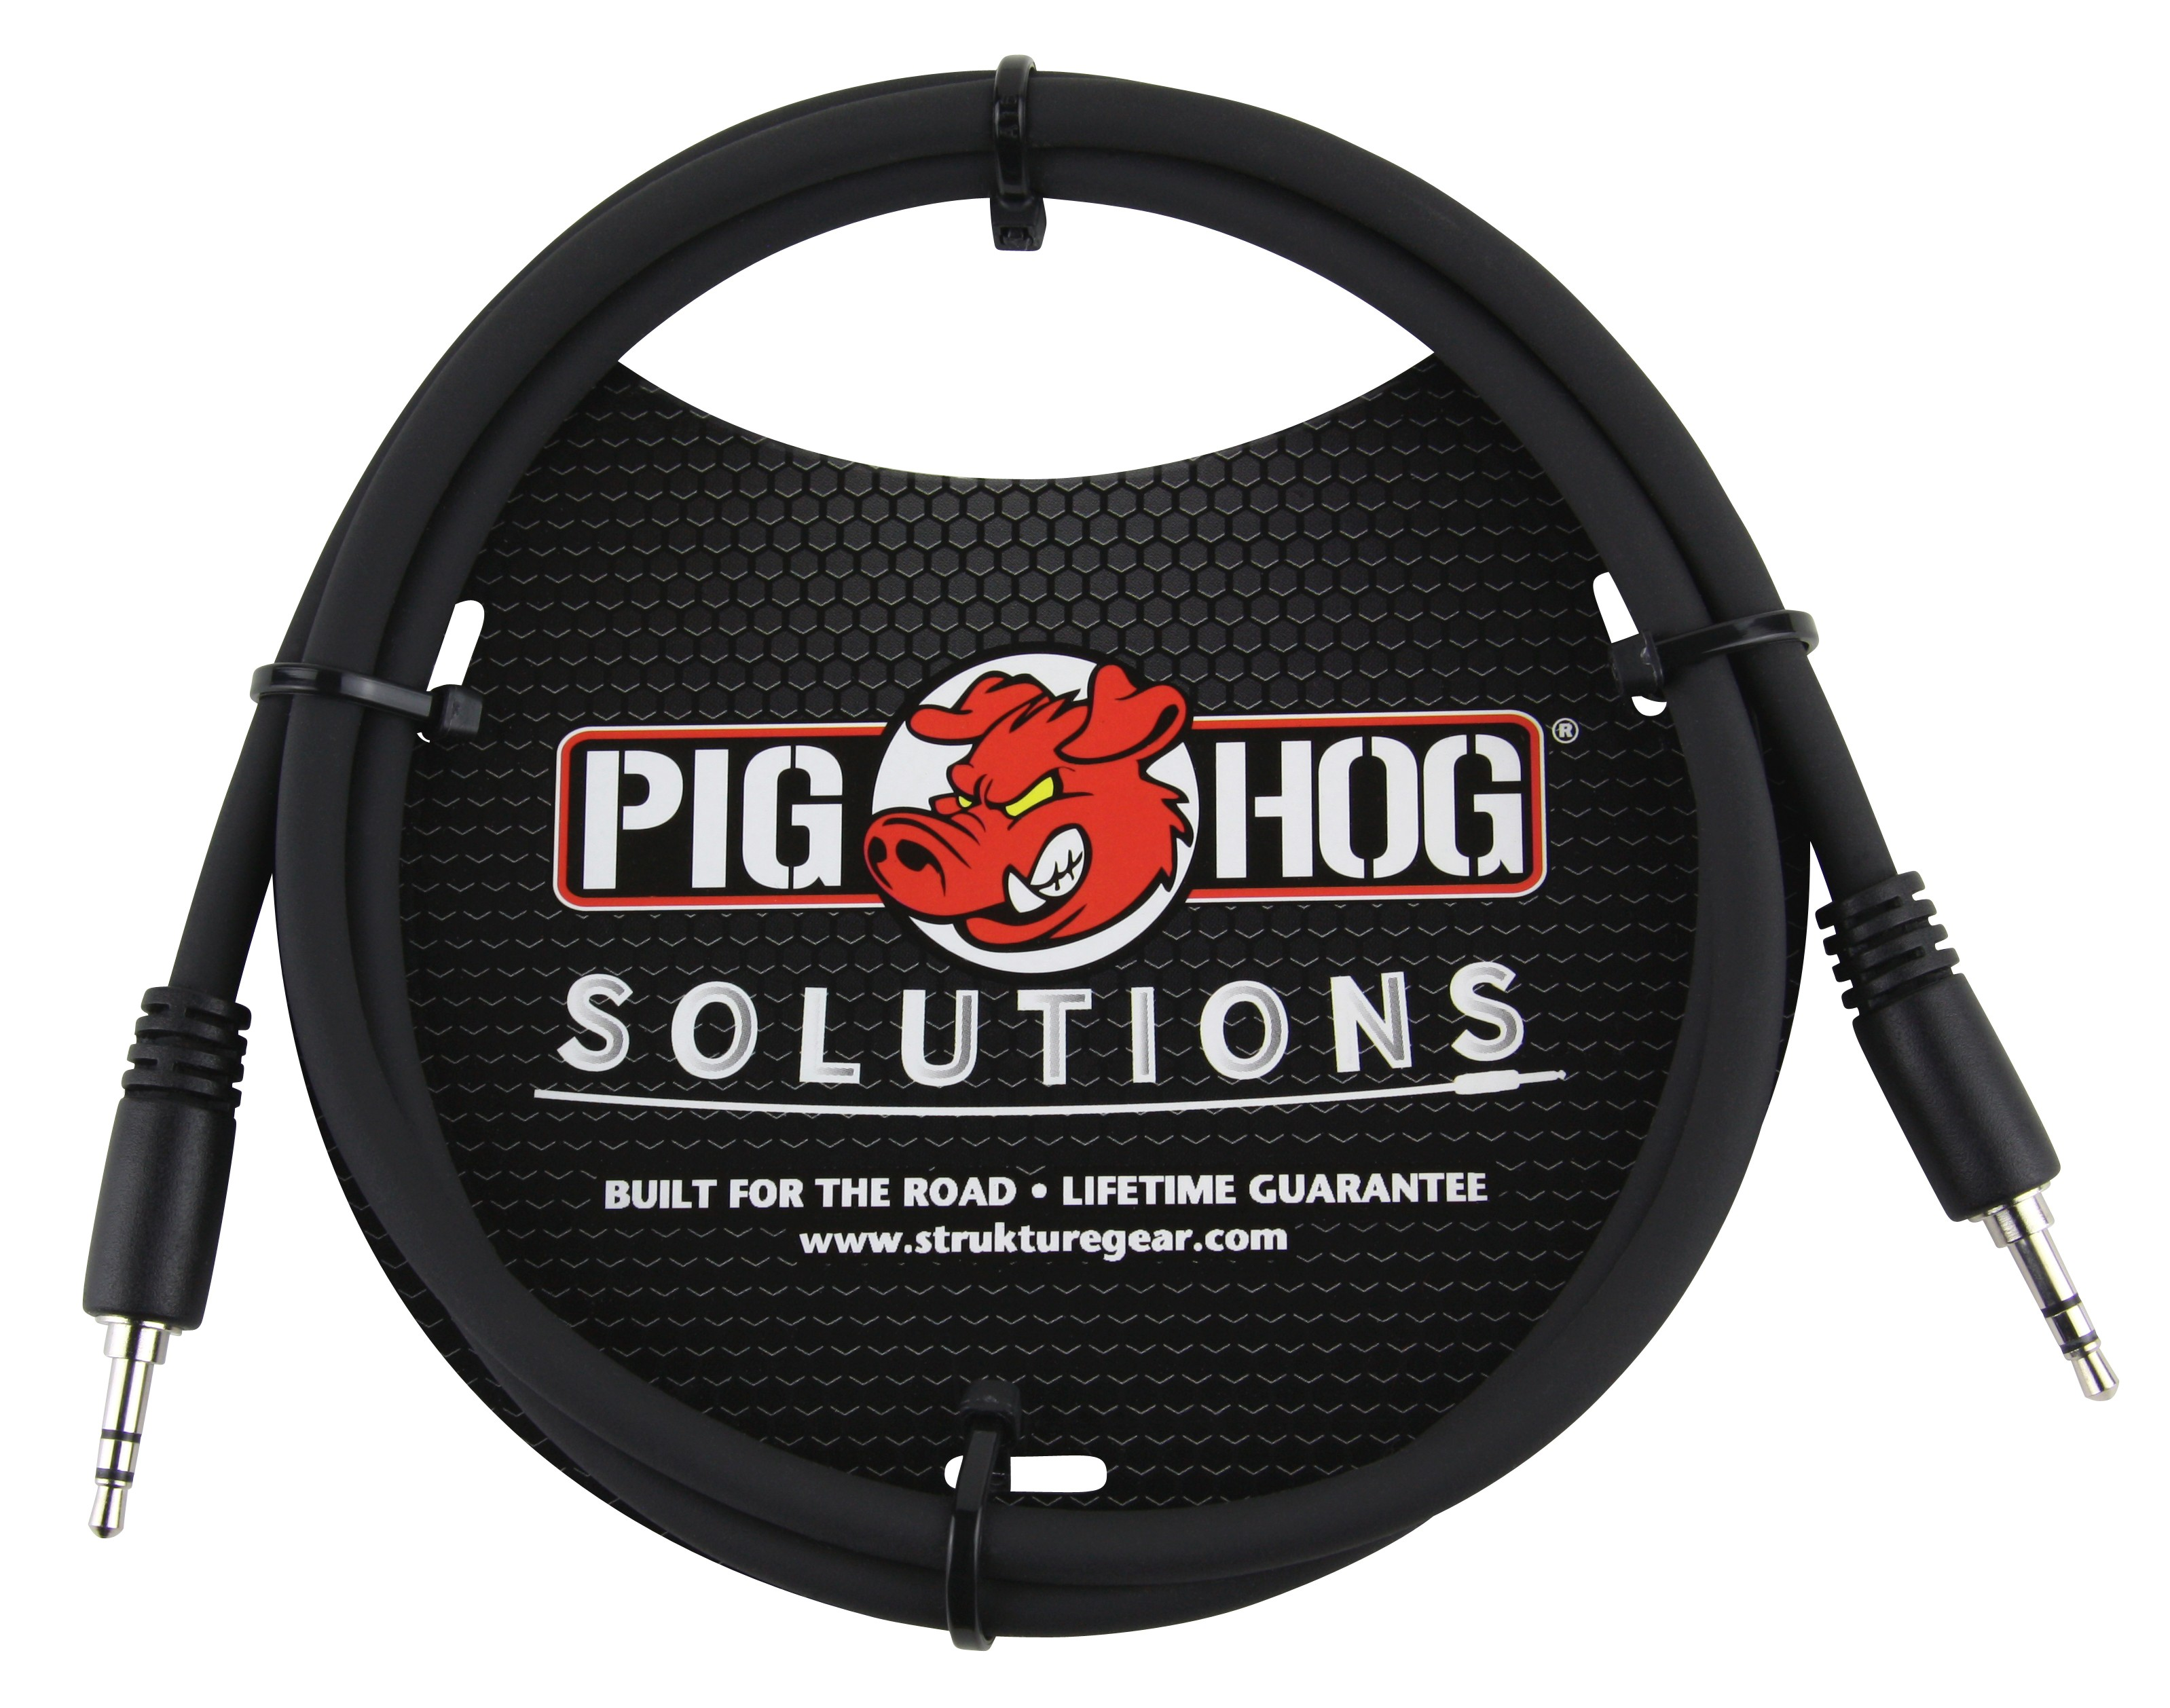 pig-hog-px-t3503-3ft-eighthin-to-eighthin-cable.jpg